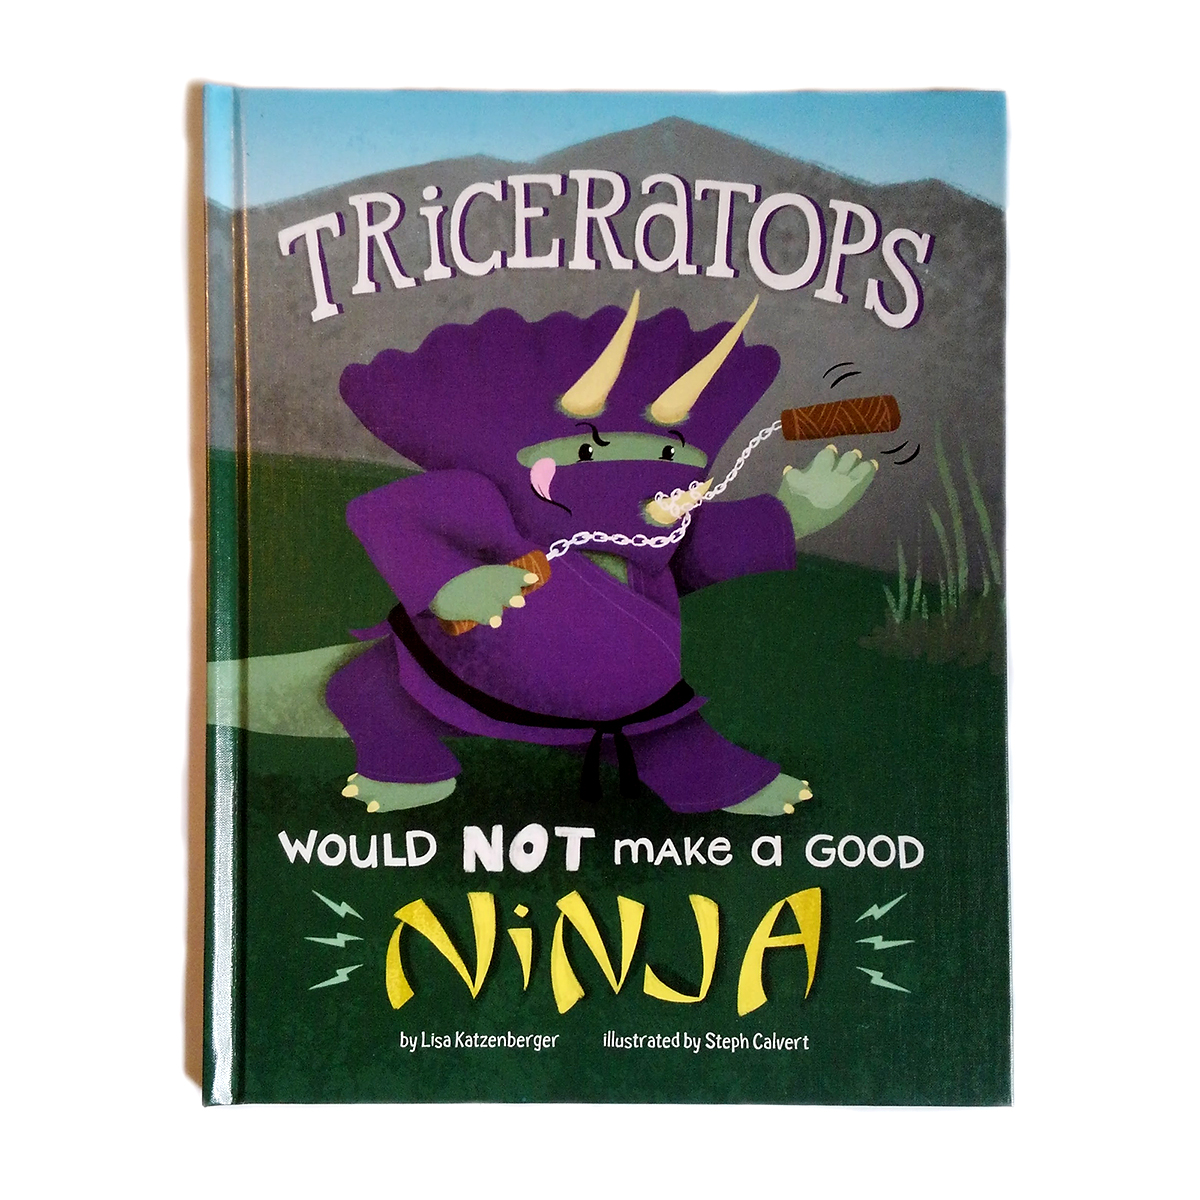 Triceratops Would Not Make a Good Ninja illustrated by Steph Calvert Art